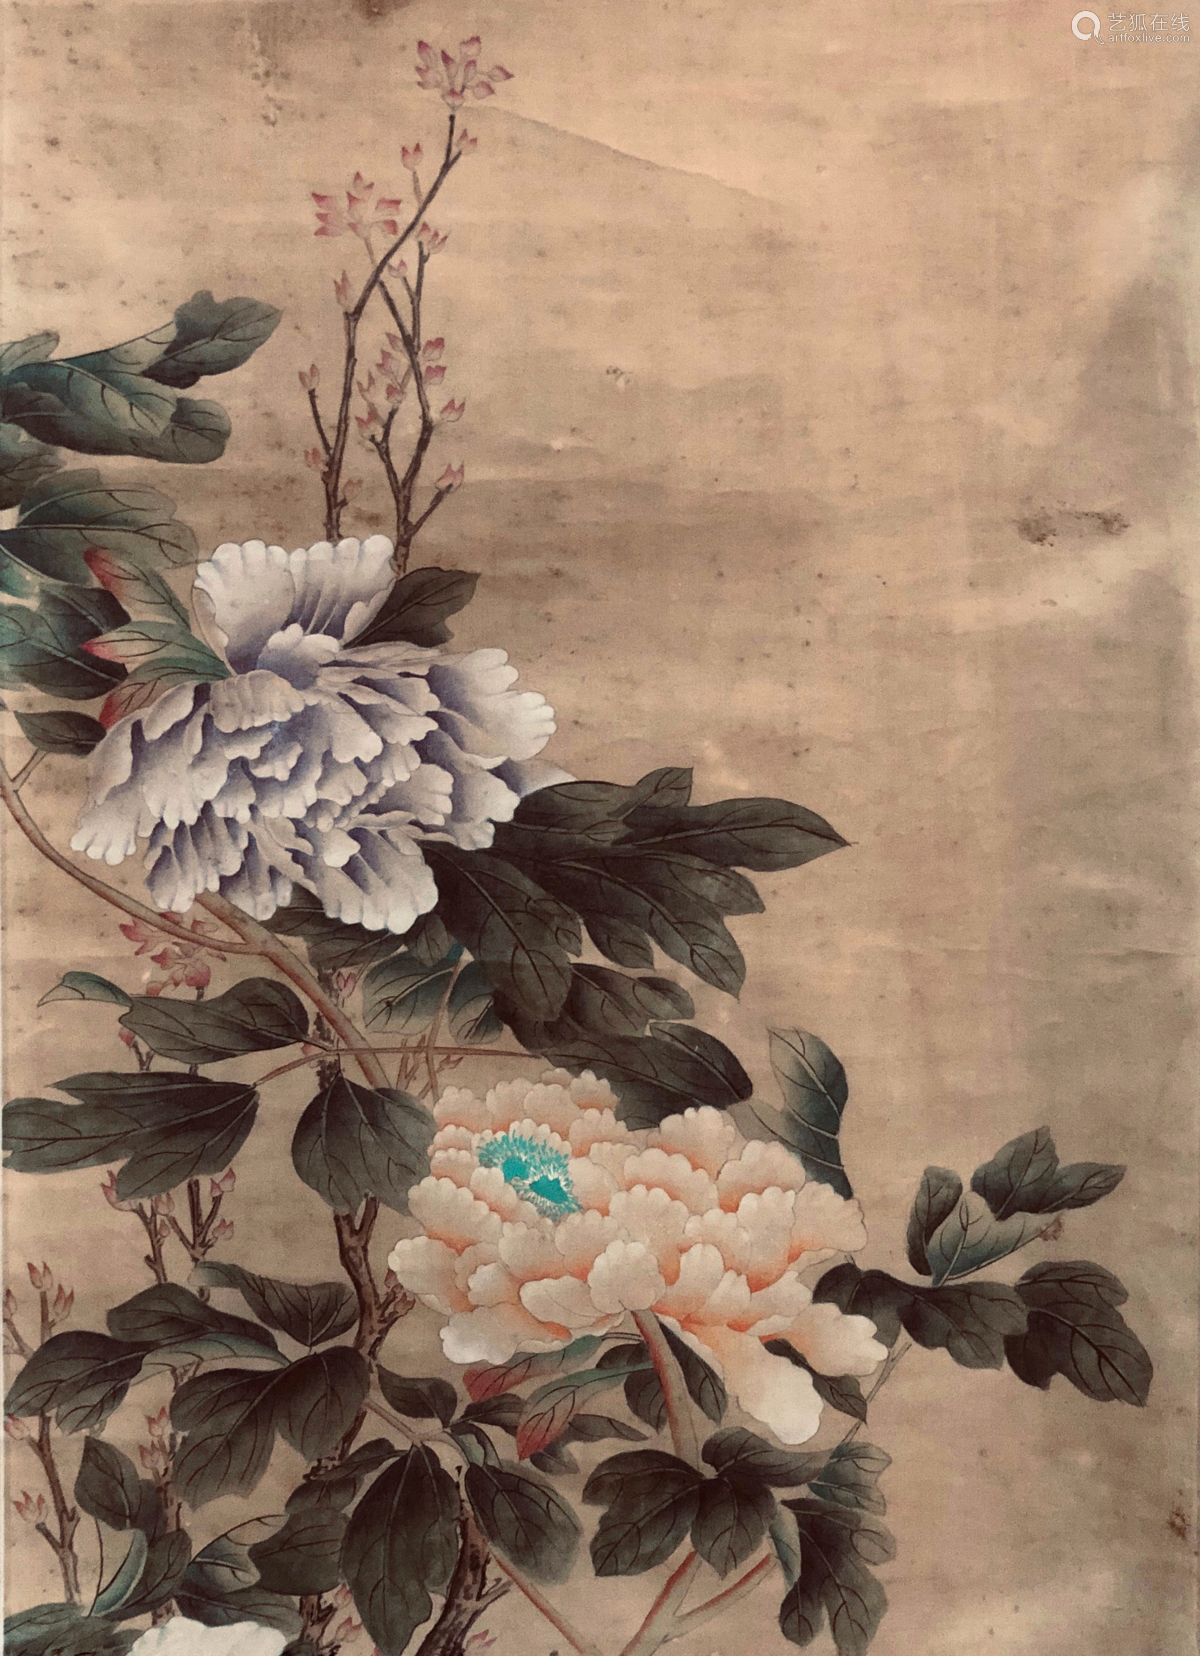 17-19TH CENTURY, UNKNOW <MU DAN GONG JI> PAINTING, QING DYNASTY